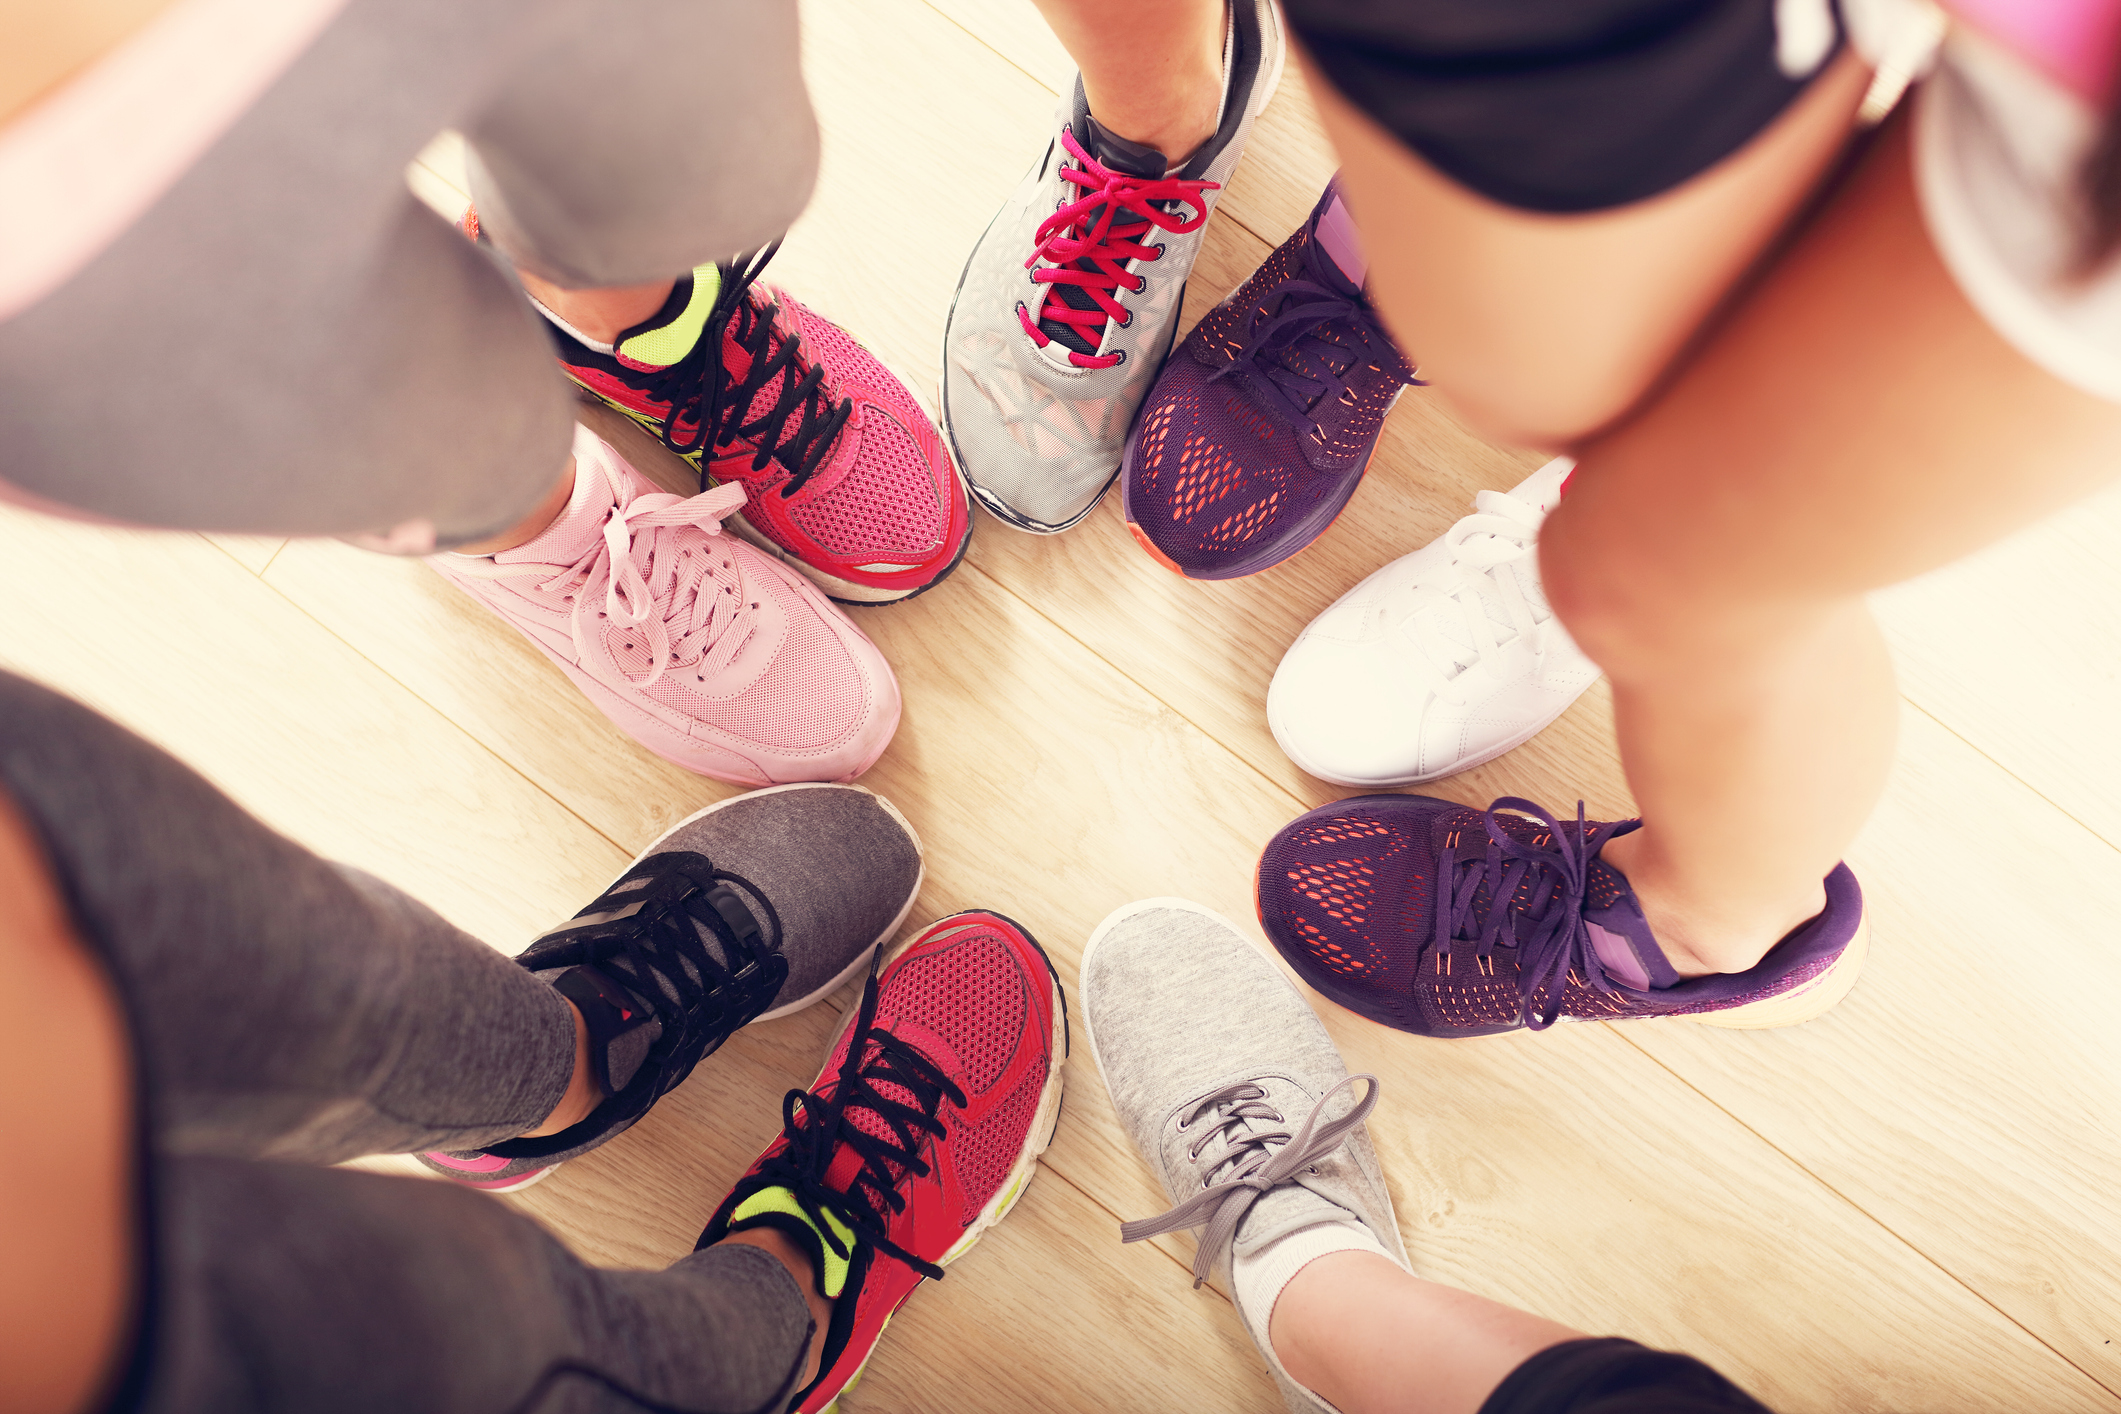 Circle-of-legs-with-shoes-in-a-gym-690270446_2125x1416.jpeg